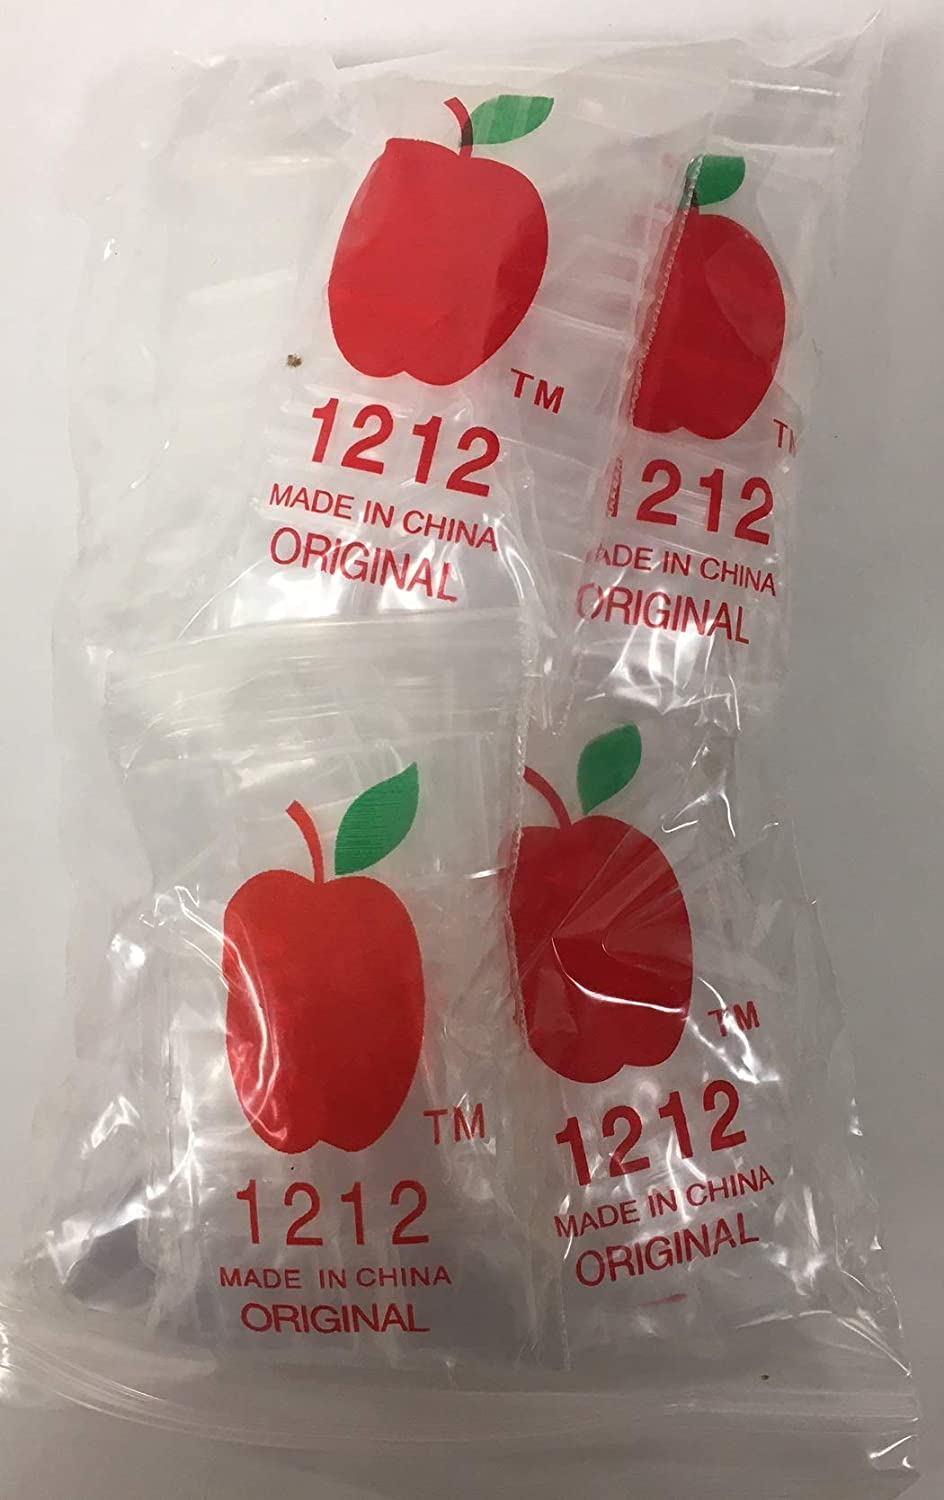 1,000 1/2x1/2 2mil Apple Brand Clear Resealable Bags .5 1/2 1212 X 1000 Baggies